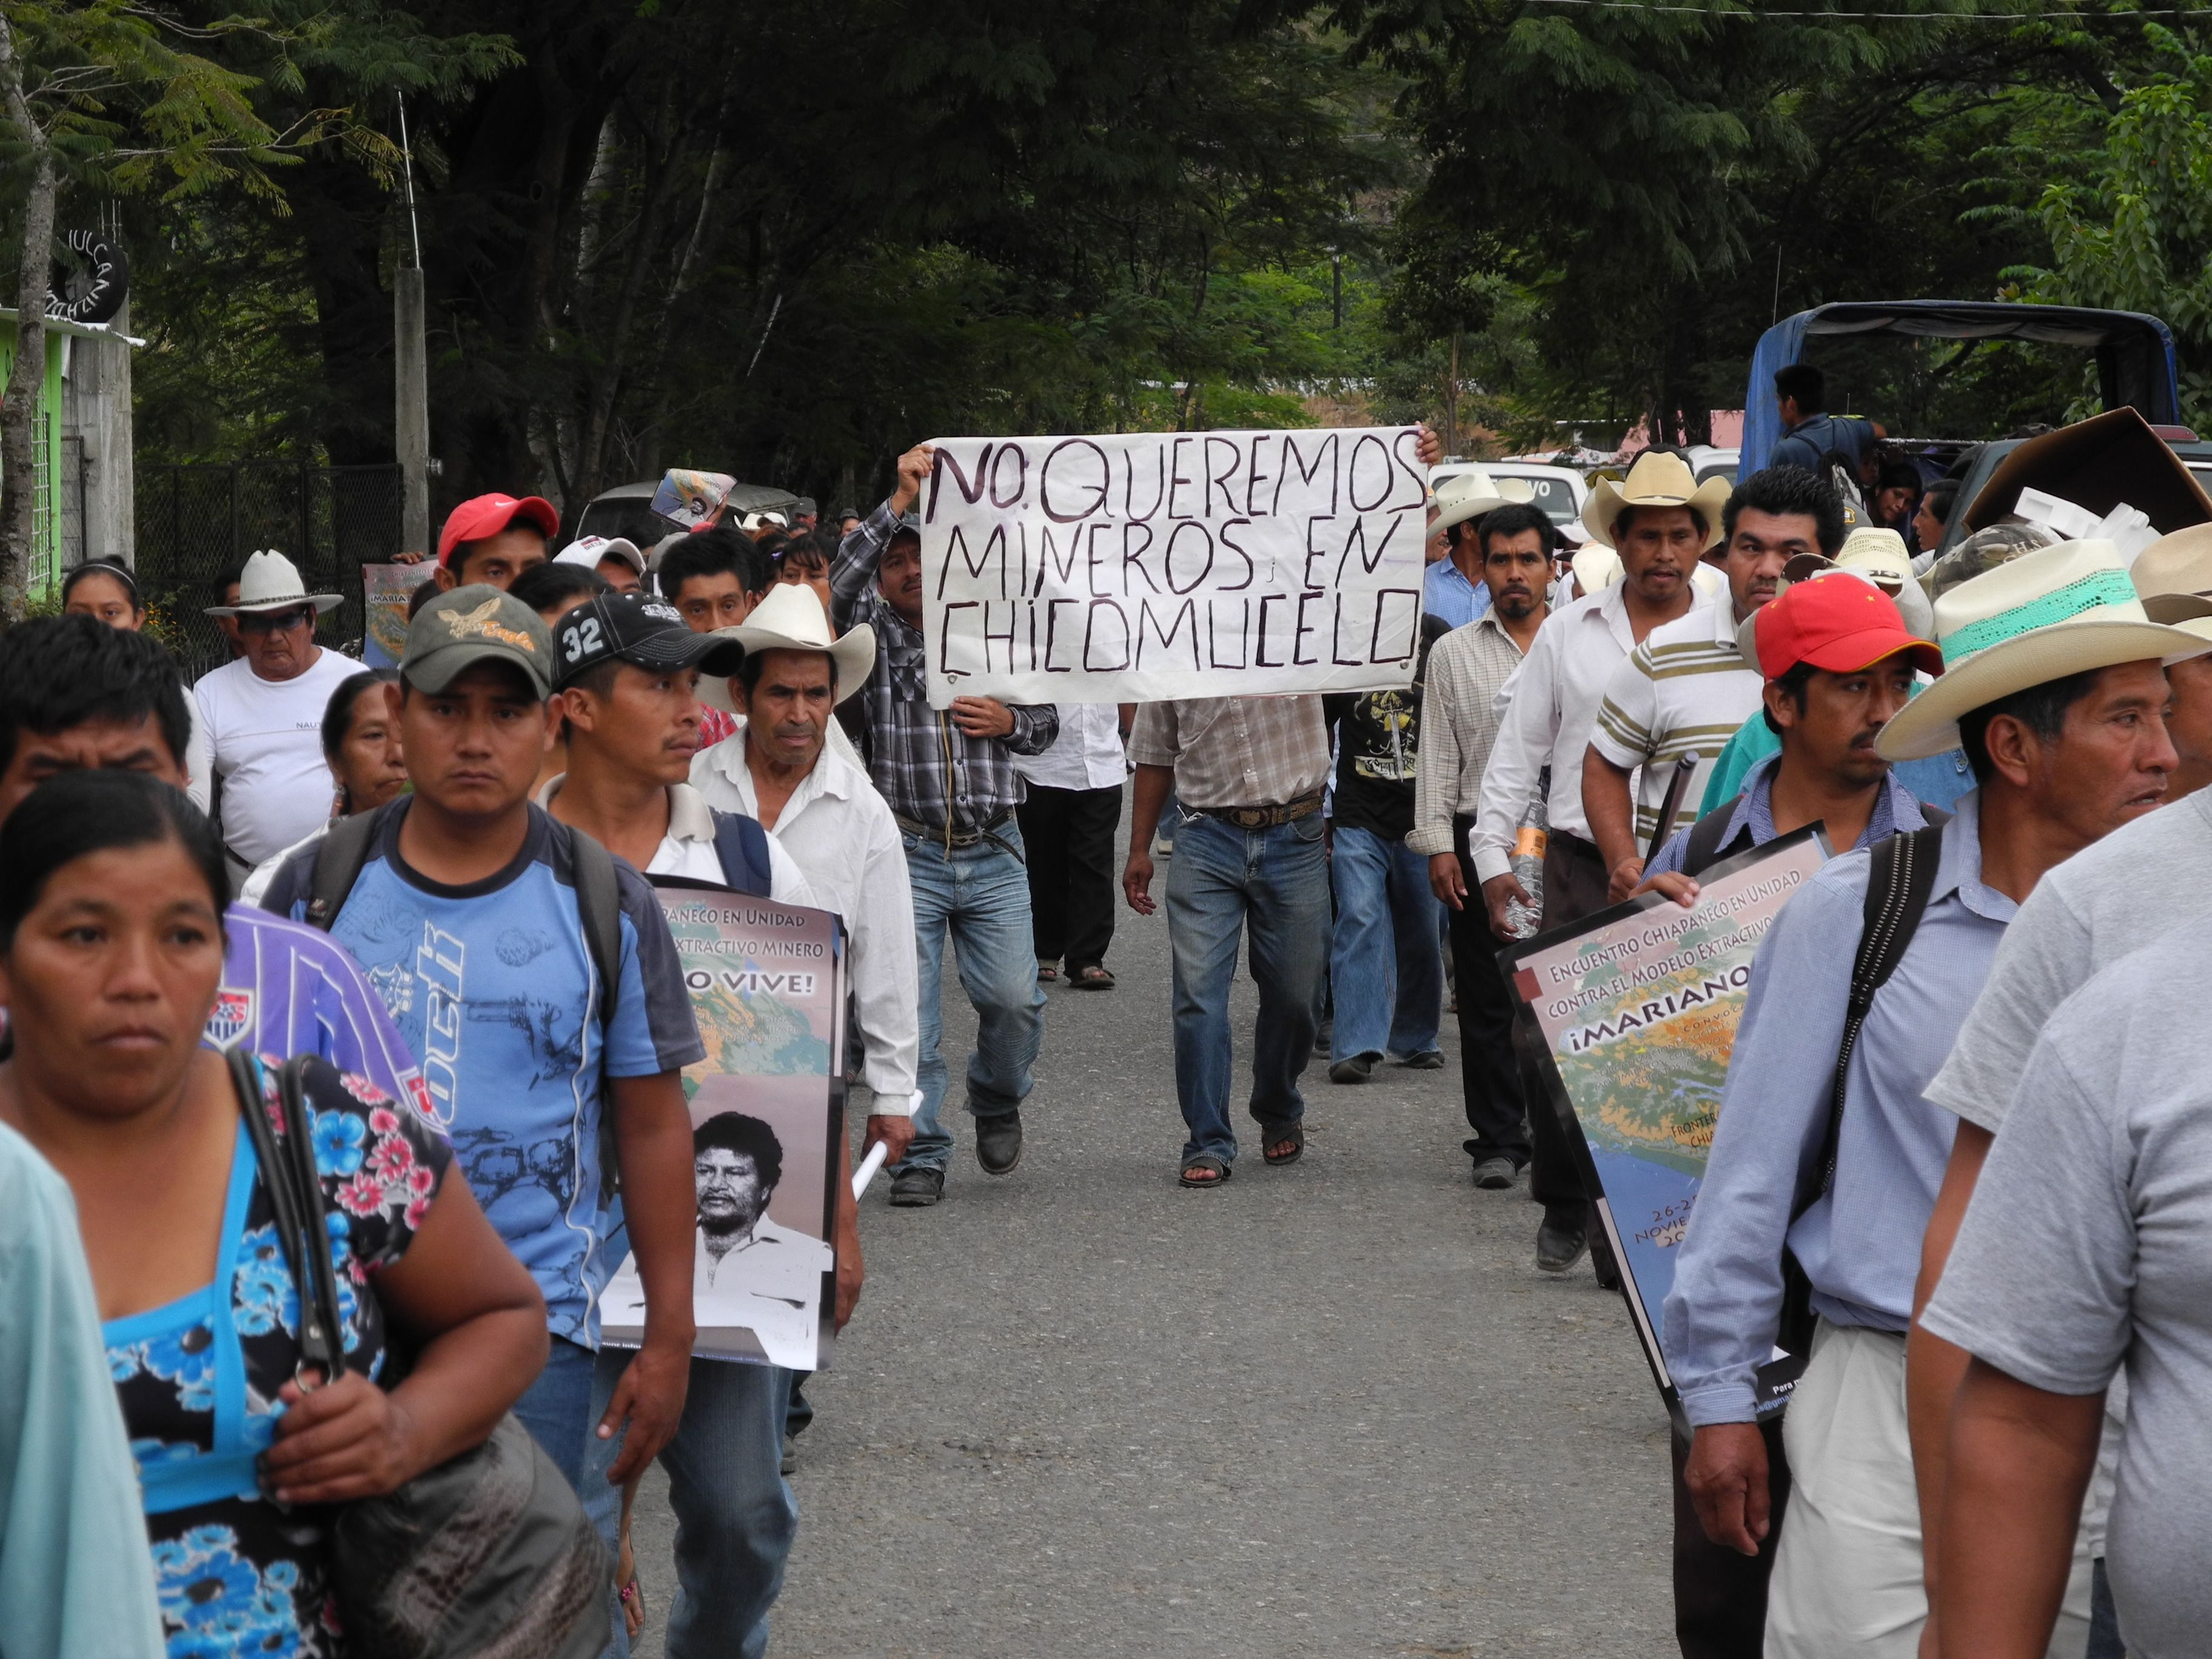 """A large crowd of people moves down a tree-lined street towards the camera. A banner in the center of the crowd reads """"We do not want miners in Chicumucelo"""""""